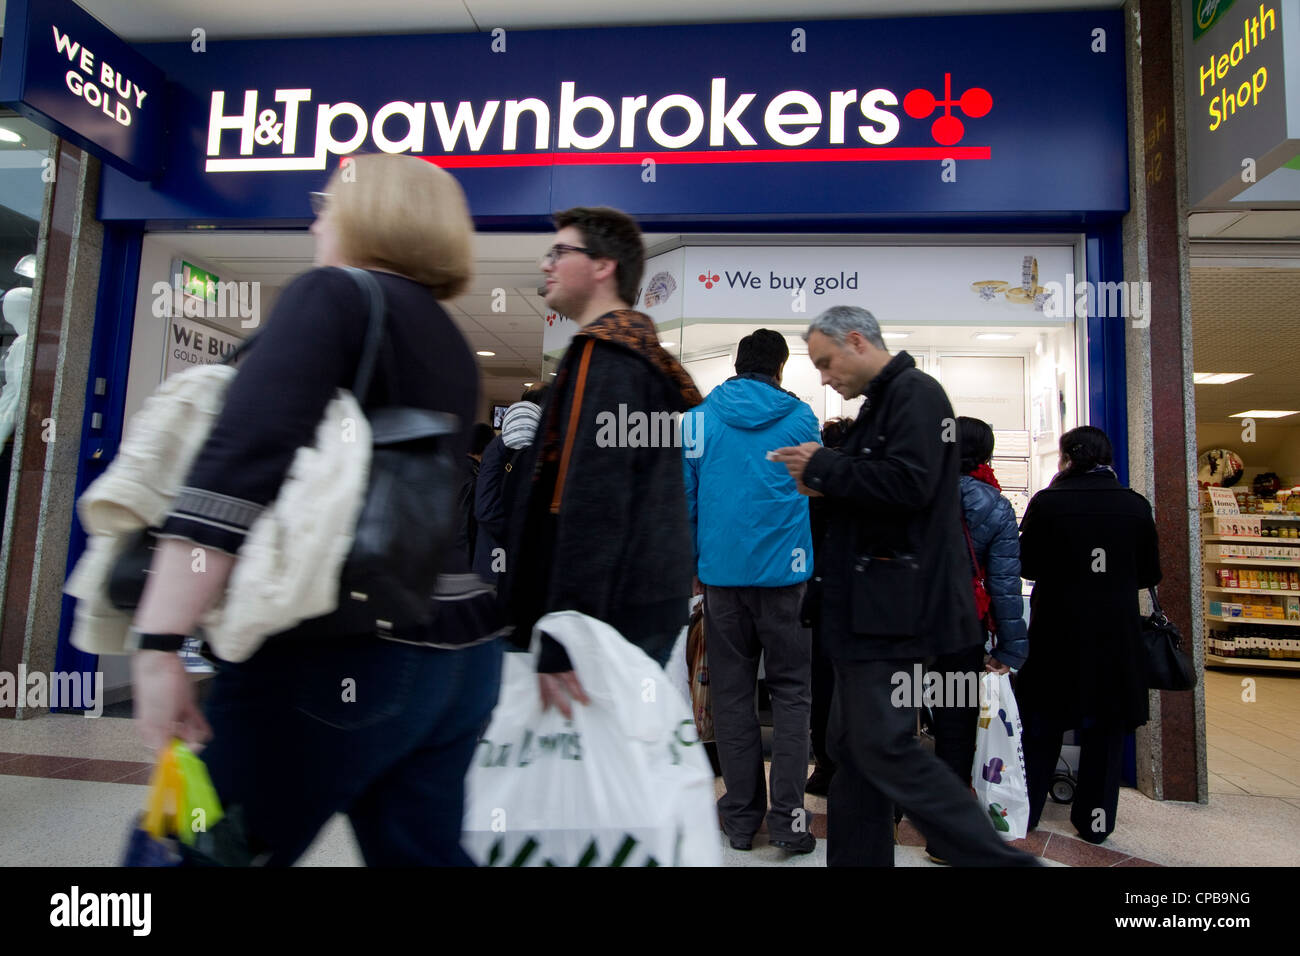 handt H&T pawnbrokers pawnbroker east London, with we buy gold sign - Stock Image